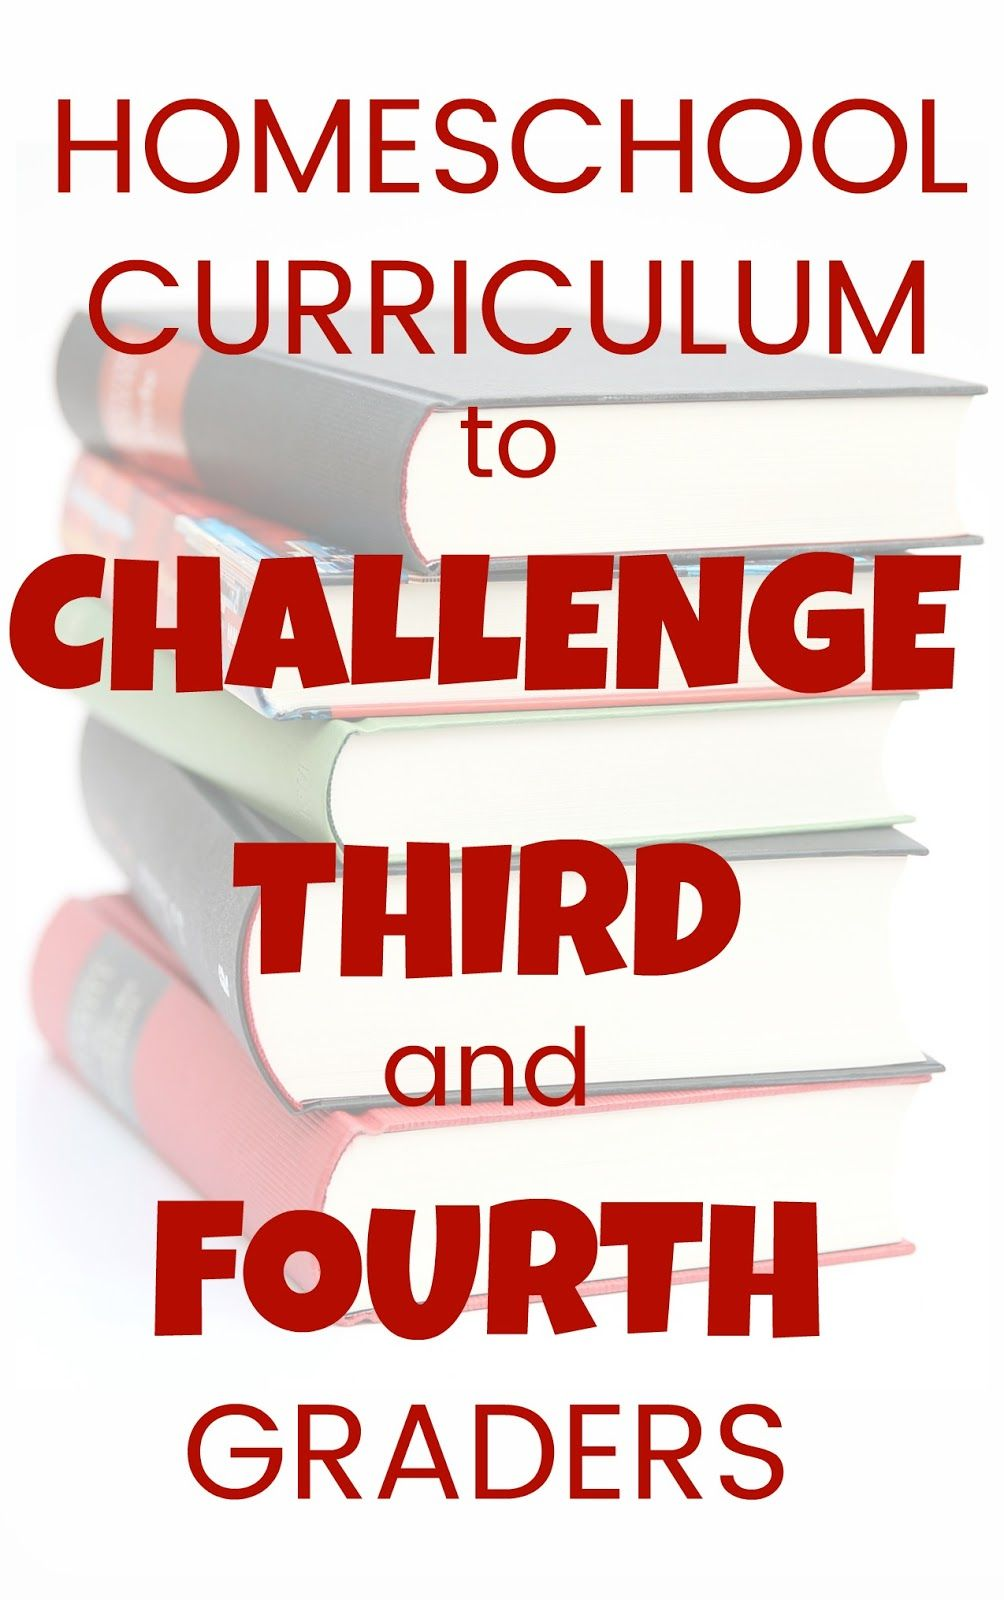 Homeschool Curriculum To Challenge A Third And Fourth Grader